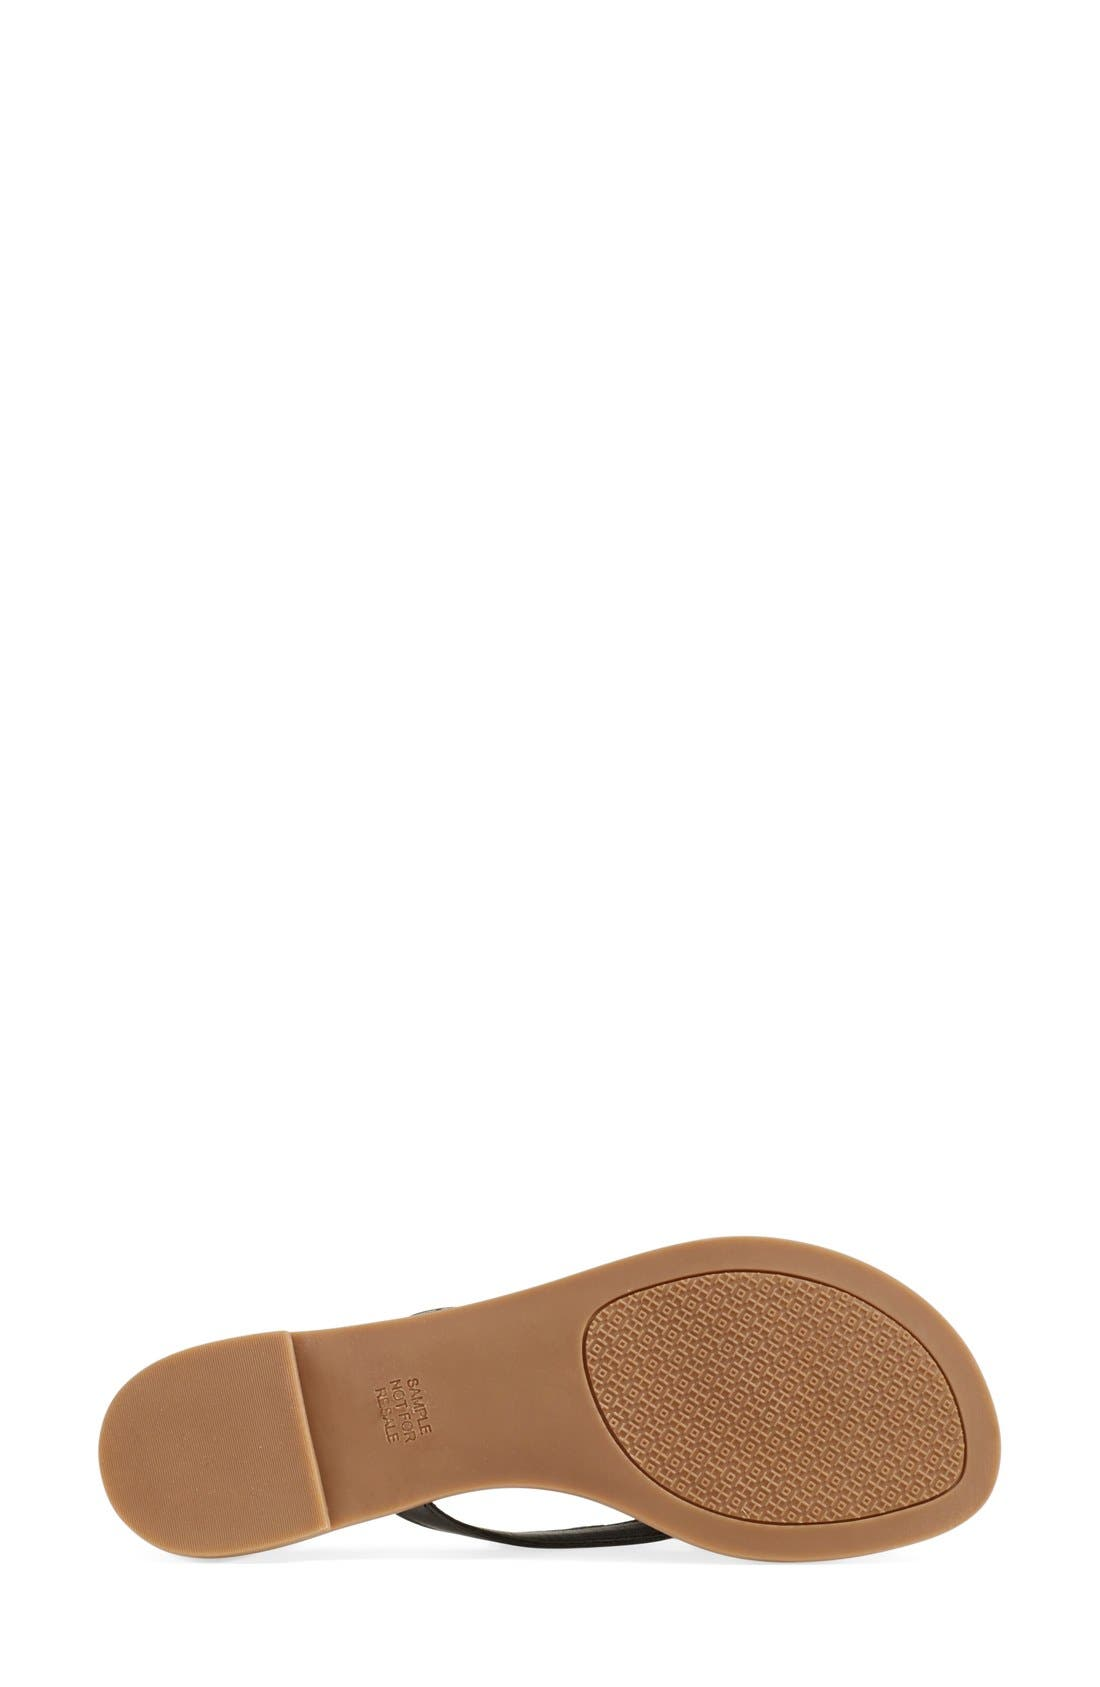 TORY BURCH, 'Terra' Flip Flop, Alternate thumbnail 2, color, 001